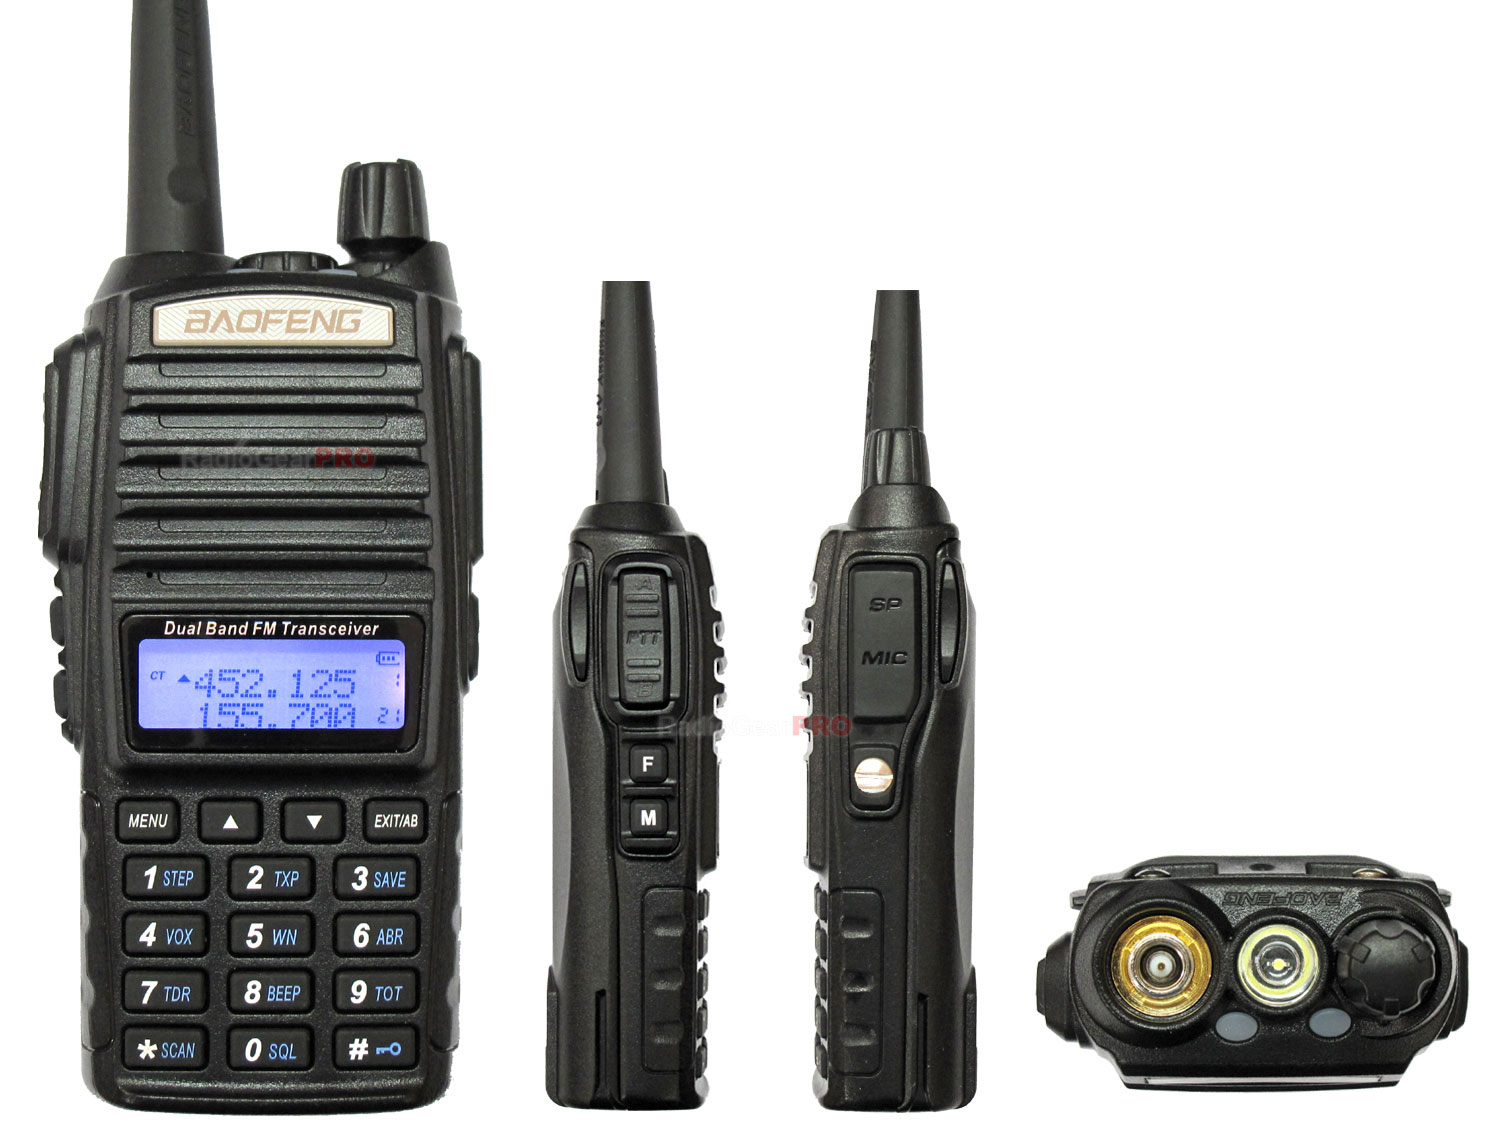 Shure Sm58 13248 further Does Differential Gps Dgps Techiques Similar With Real Time Kinematic R  Surveying Technique moreover Handheld Flashlights in addition Wel e To South America In A Fantastic Cycle Through Colombia additionally Gear Review Baofeng Handheld Radio. on handheld radio